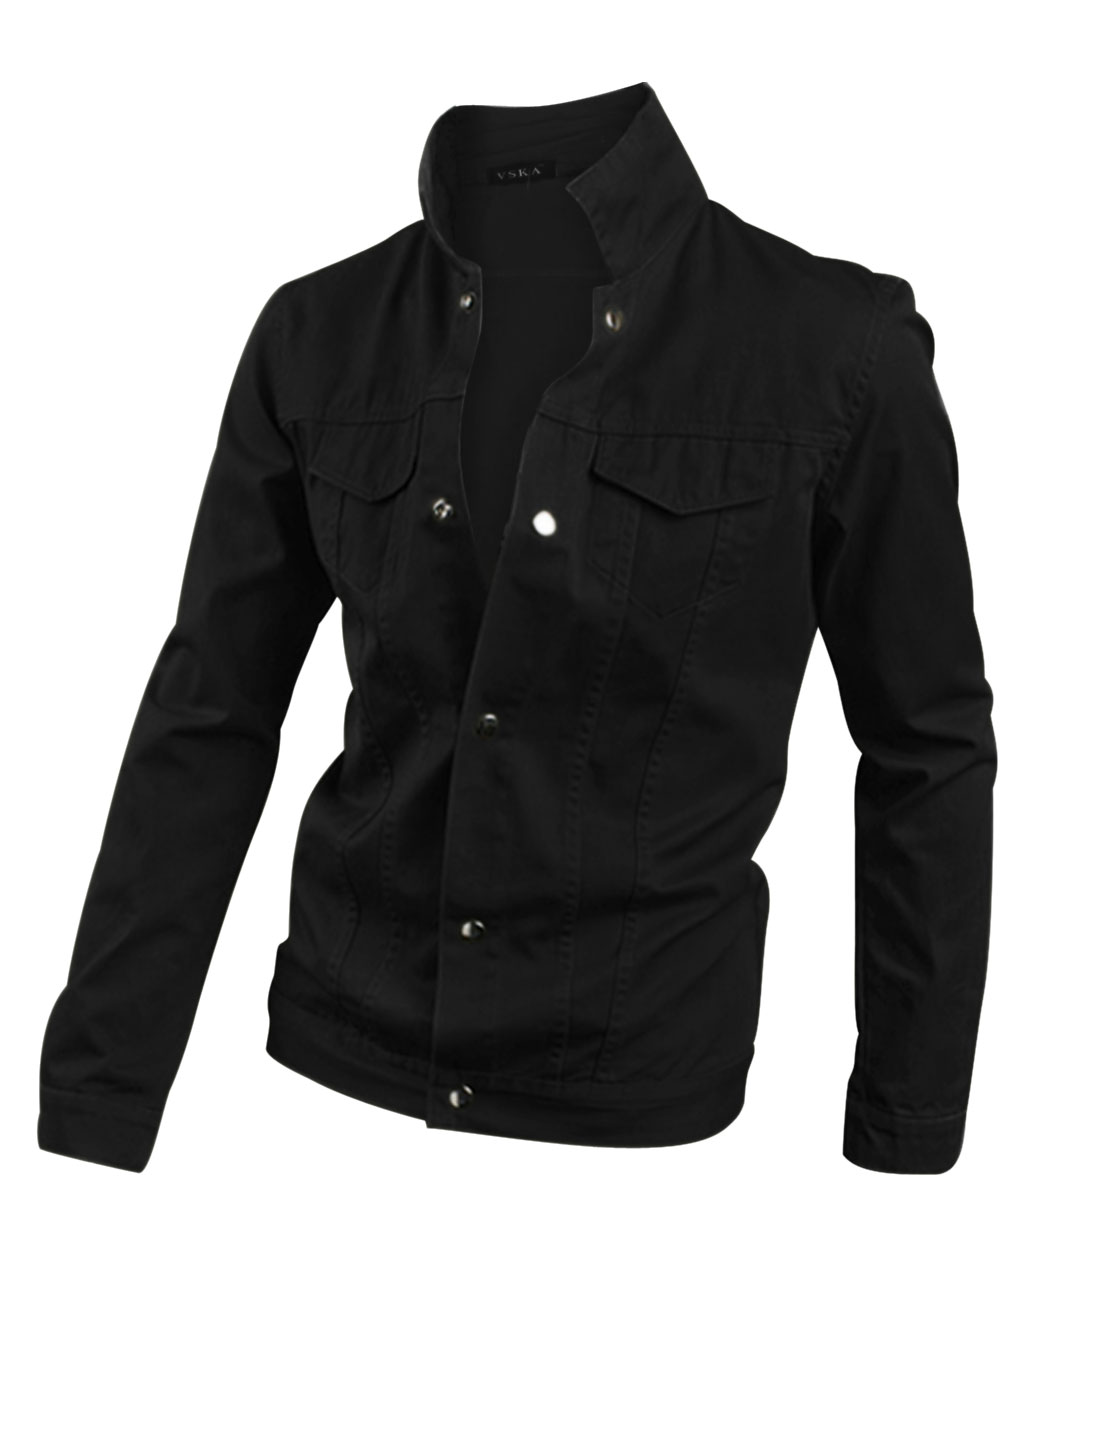 Snap Fastener Cuffs Long Sleeves Black Casual Jacket for Man M